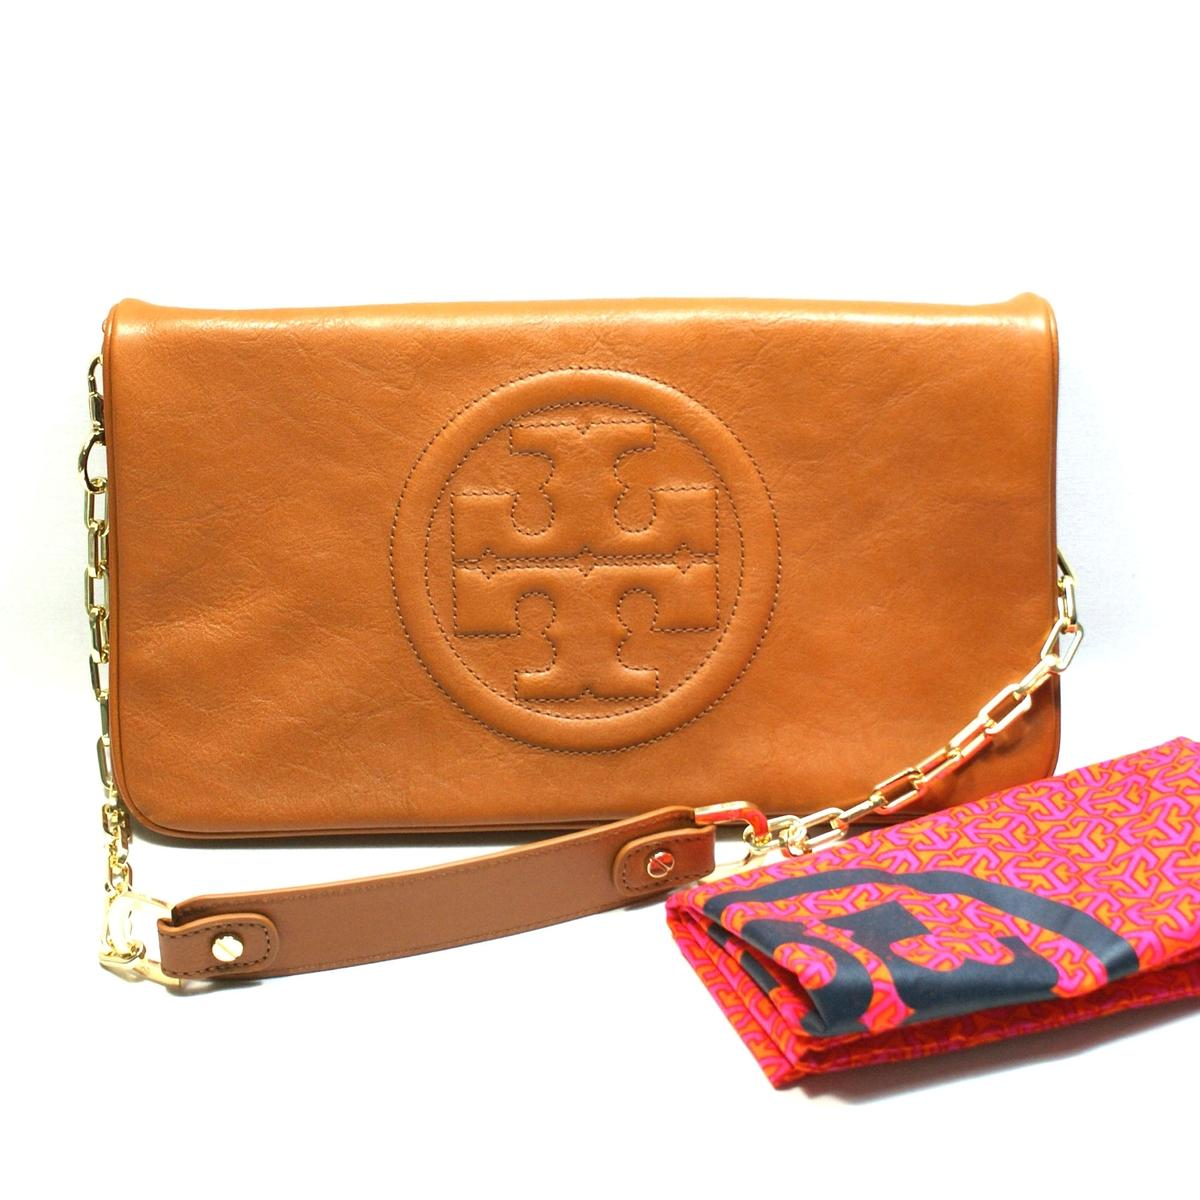 Tory Burch Luggage Leather Bombe Reva Clutch Shoulder Bag